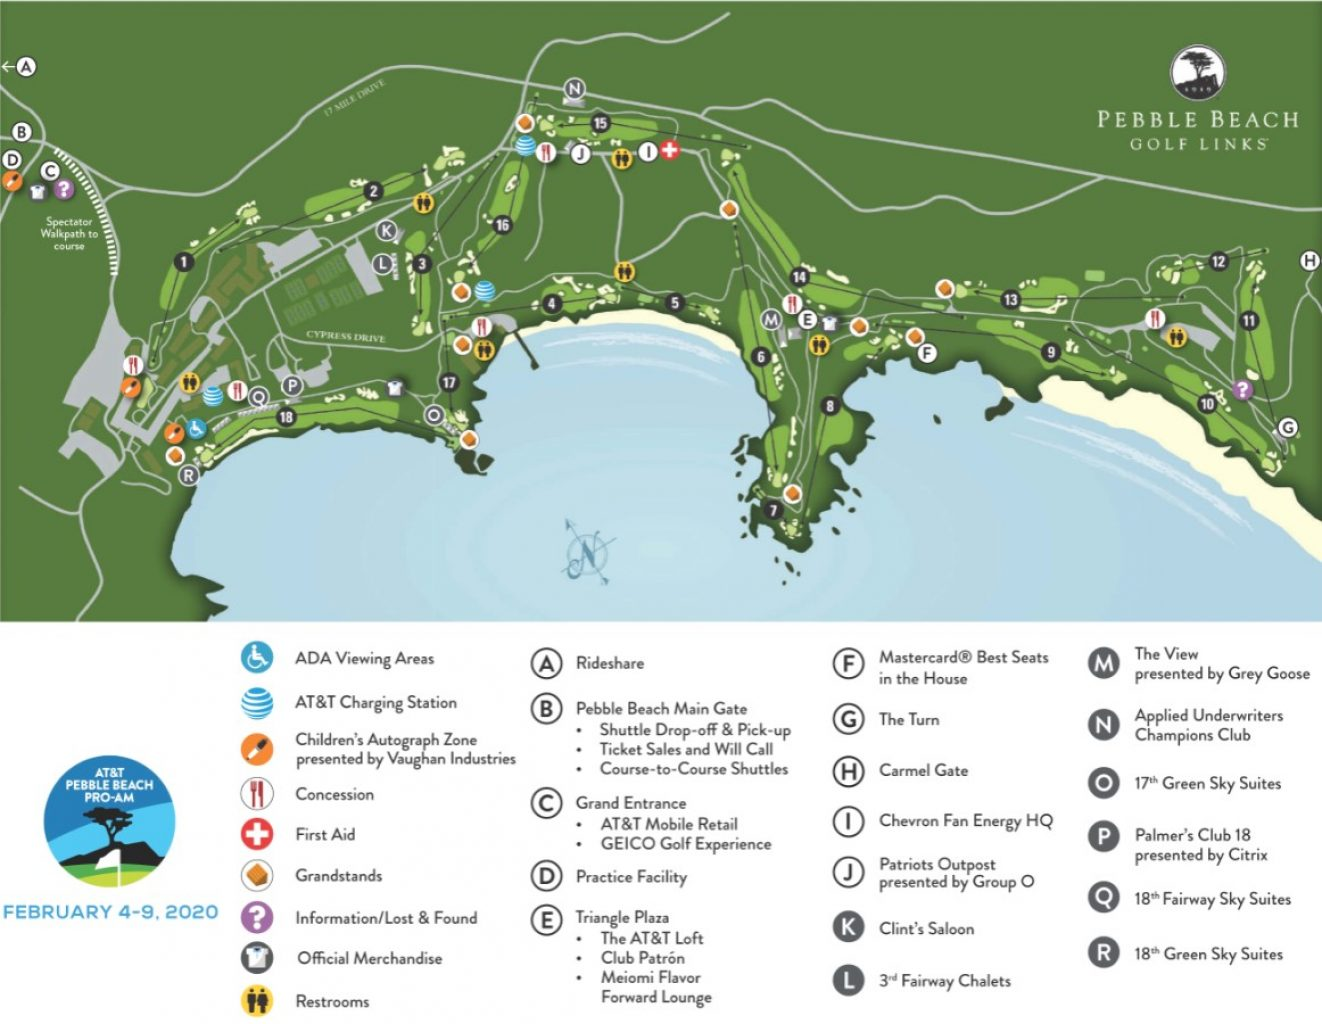 Map of Pebble Beach Golf Links AT&T Event